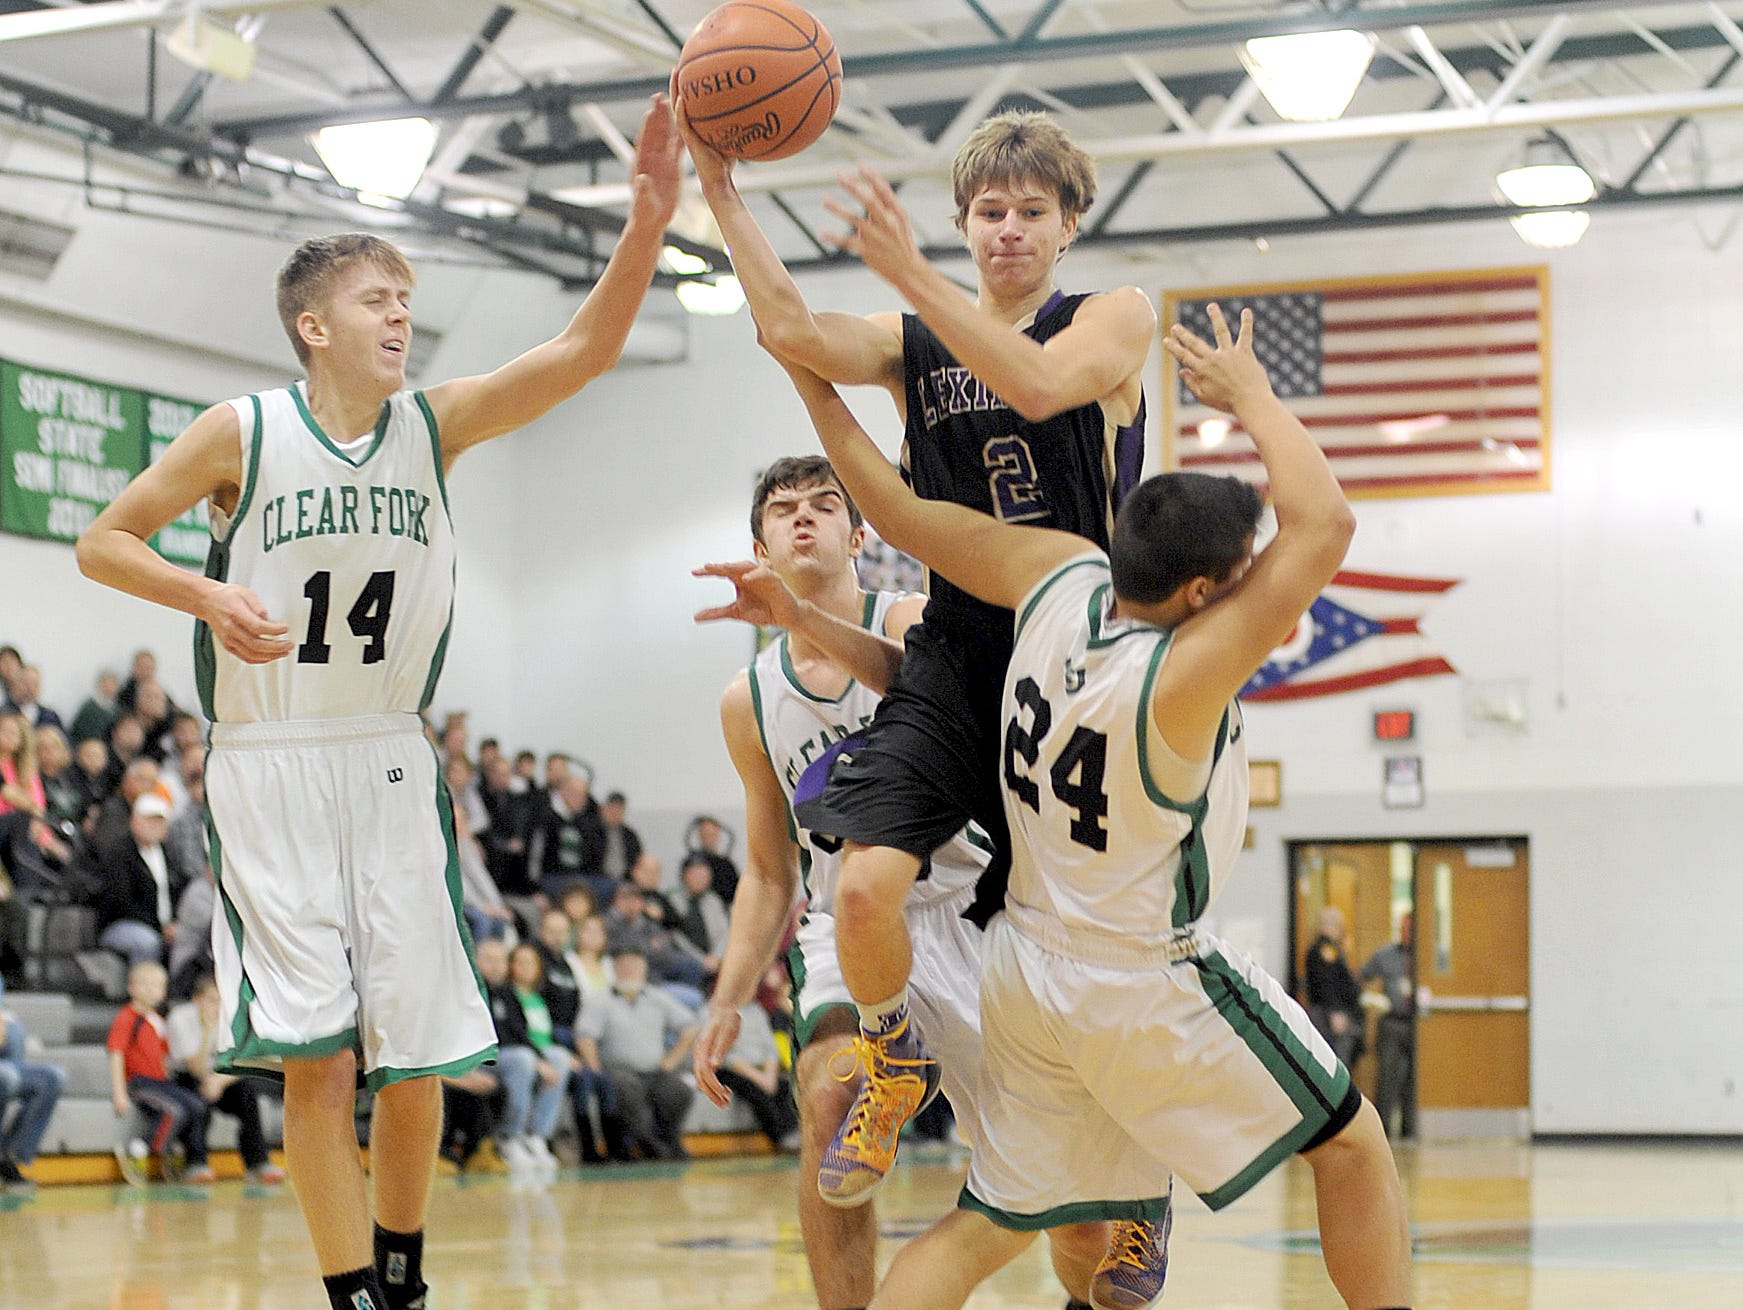 Lexington's Joey Zahn passes the ball as he is surrounded by Clear Fork's Chase Endicott, Chase Barrett and Daniel Spencer on Friday night at Clear Fork High School.